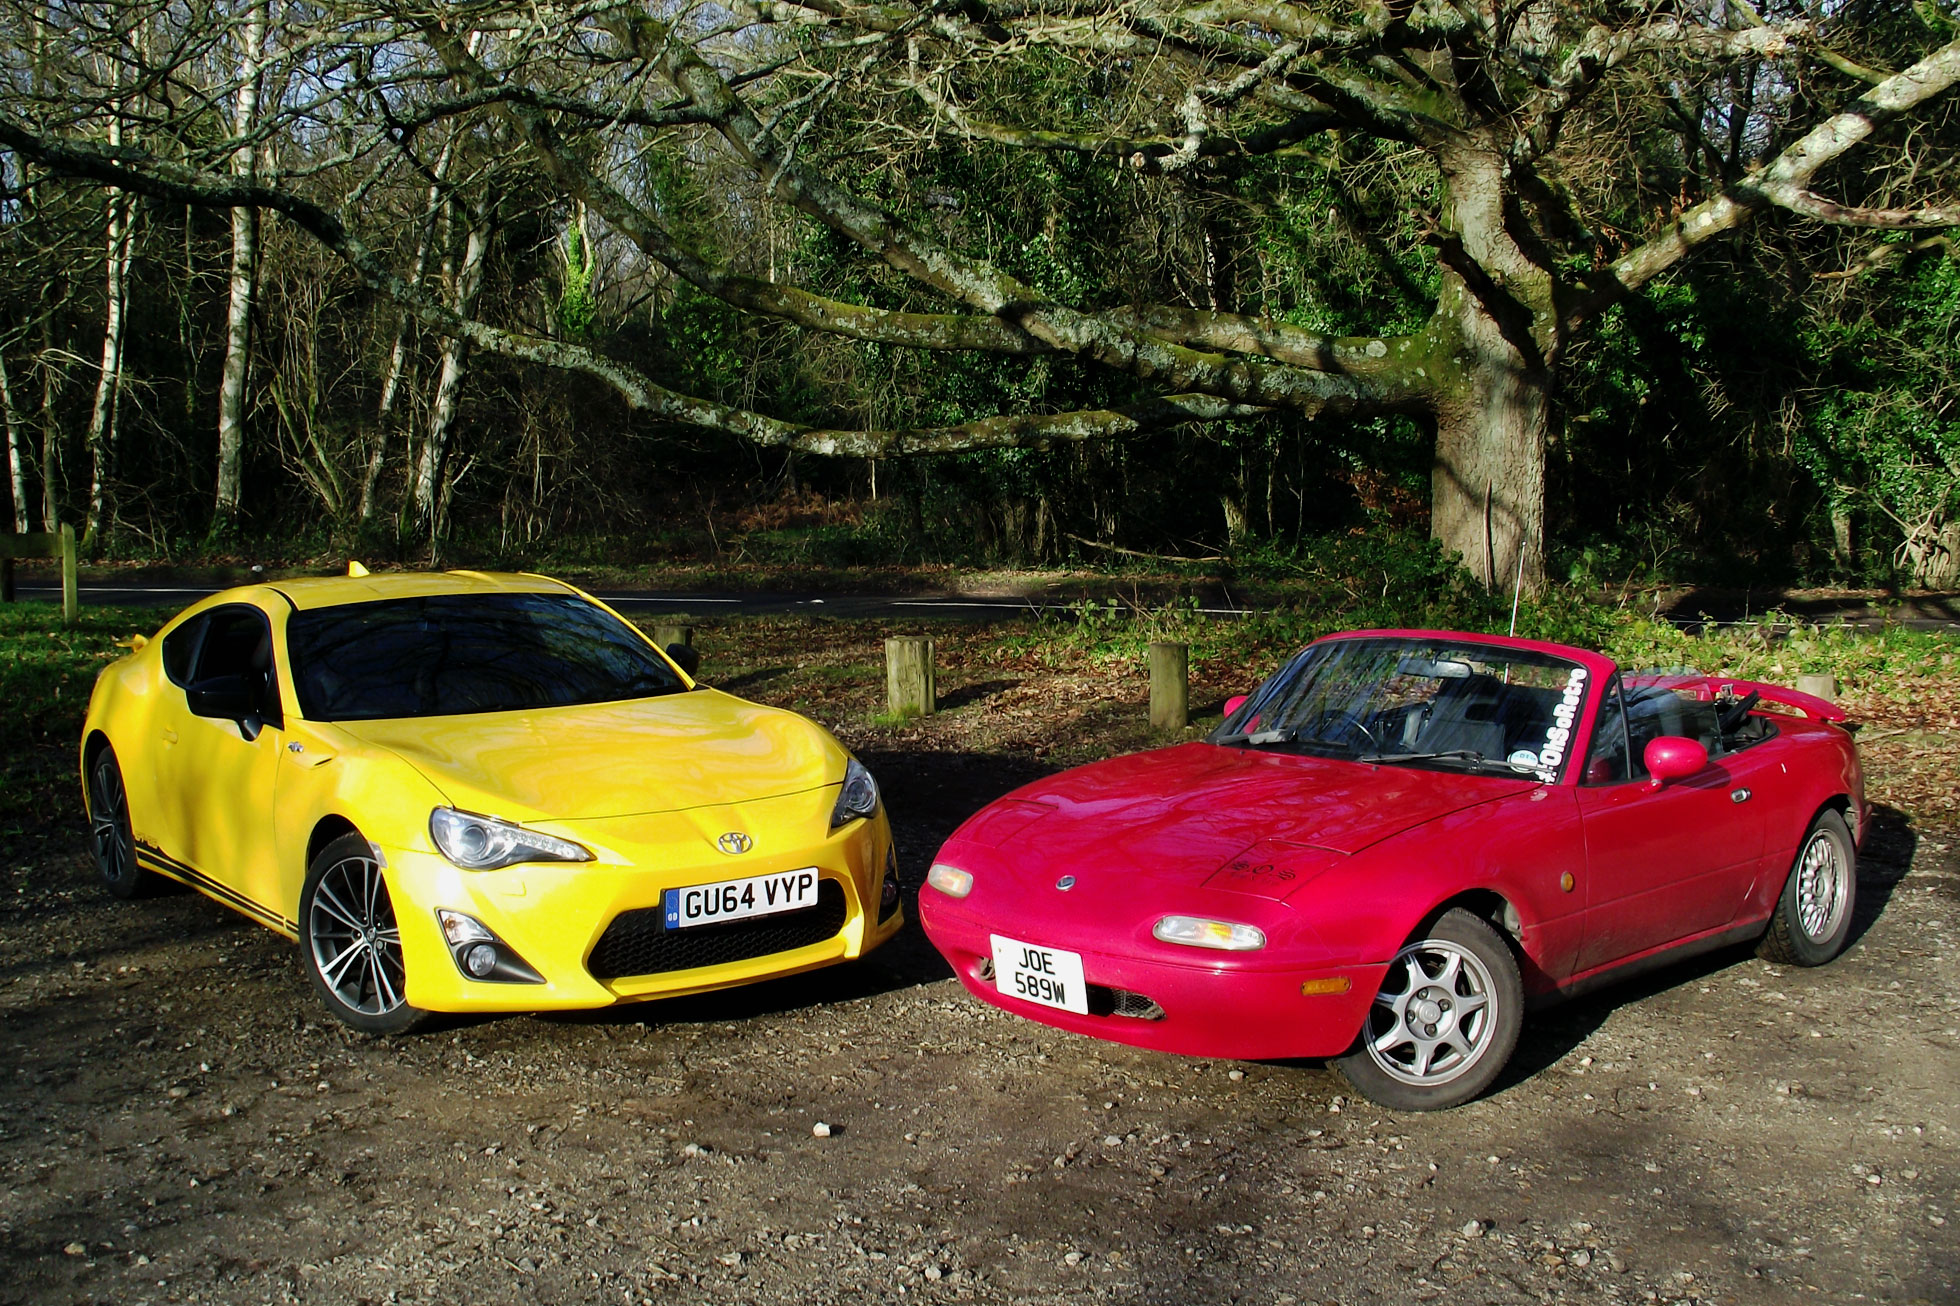 We took a pair of Japanese sports cars to the hills and it was ace